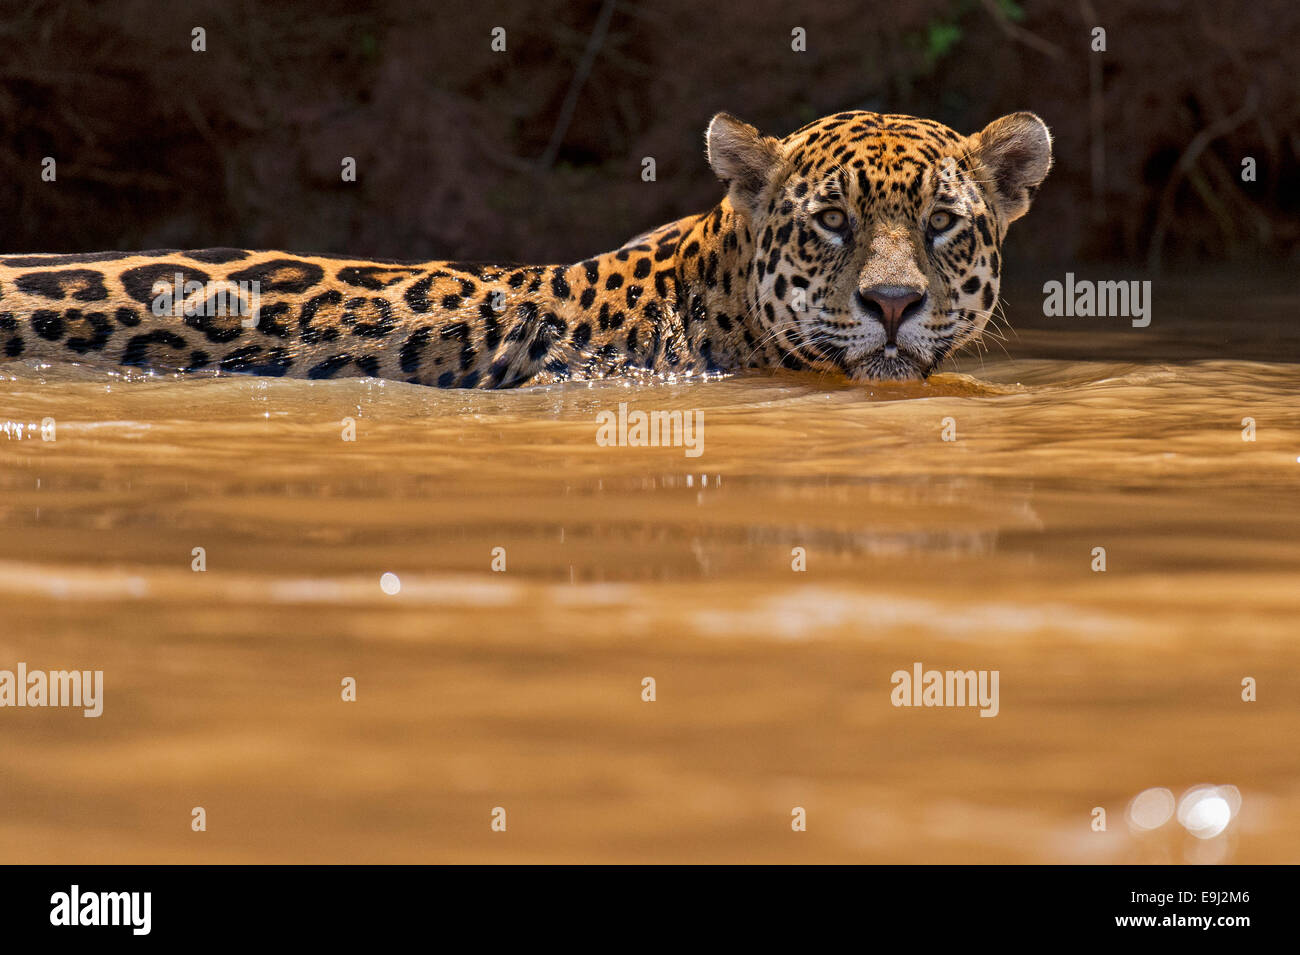 Wild jaguar swimming in the river water in Pantanal, Brazil - Stock Image